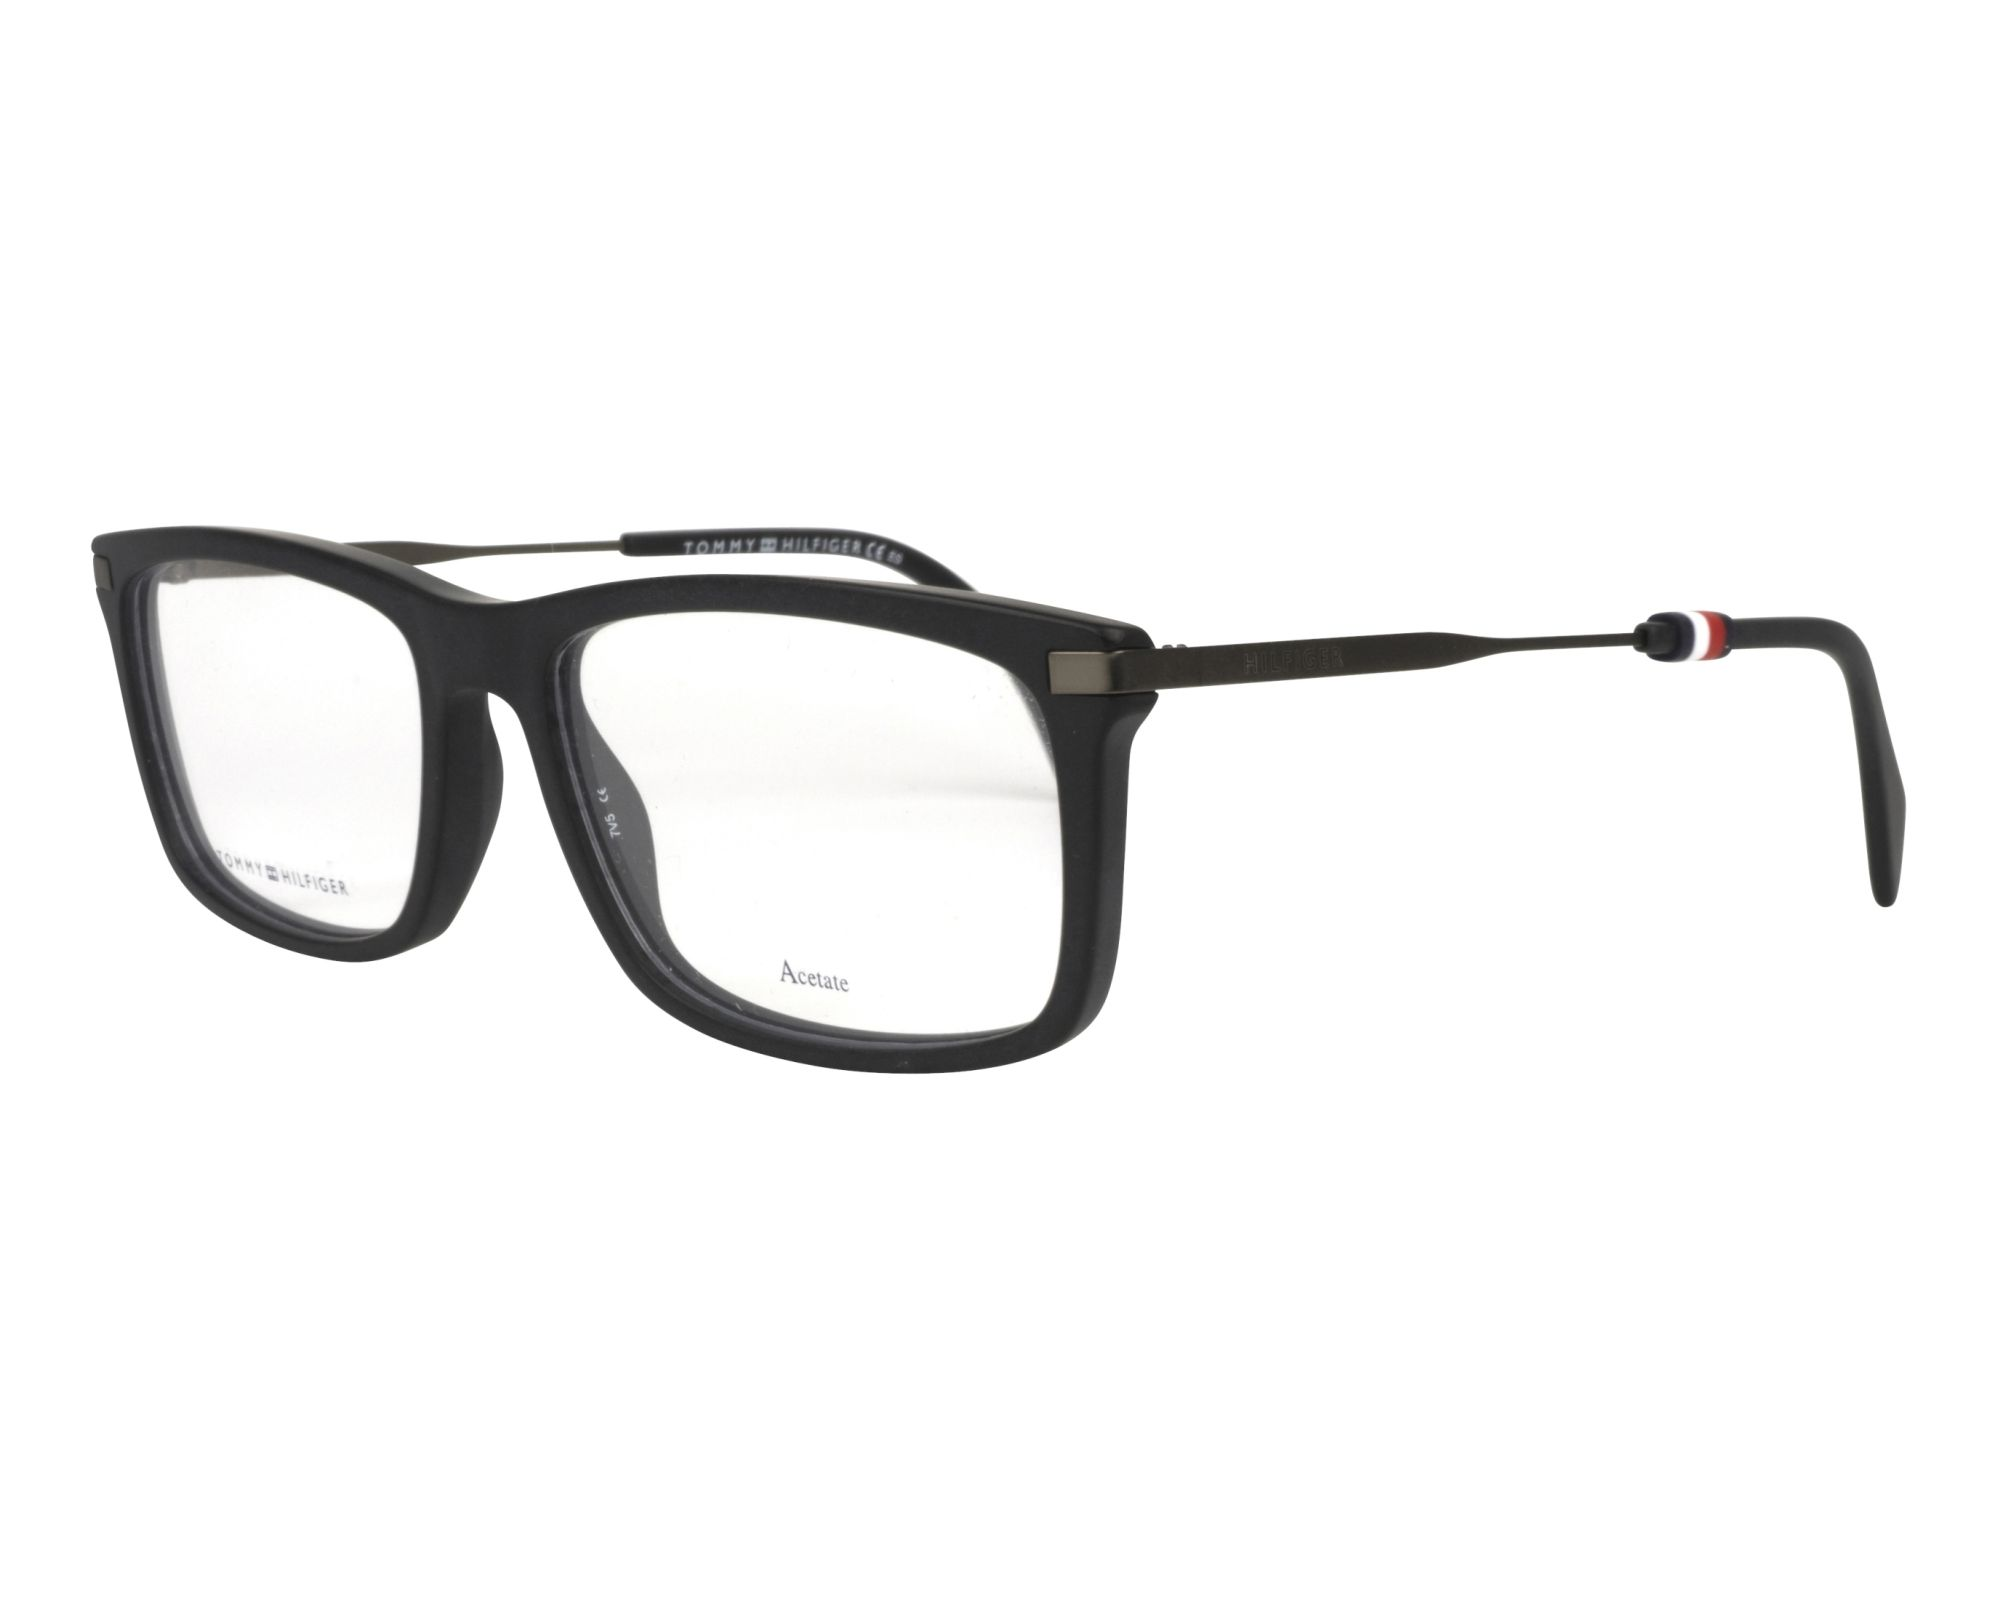 eyeglasses Tommy Hilfiger TH-1538 003 55-17 Black Gun profile view